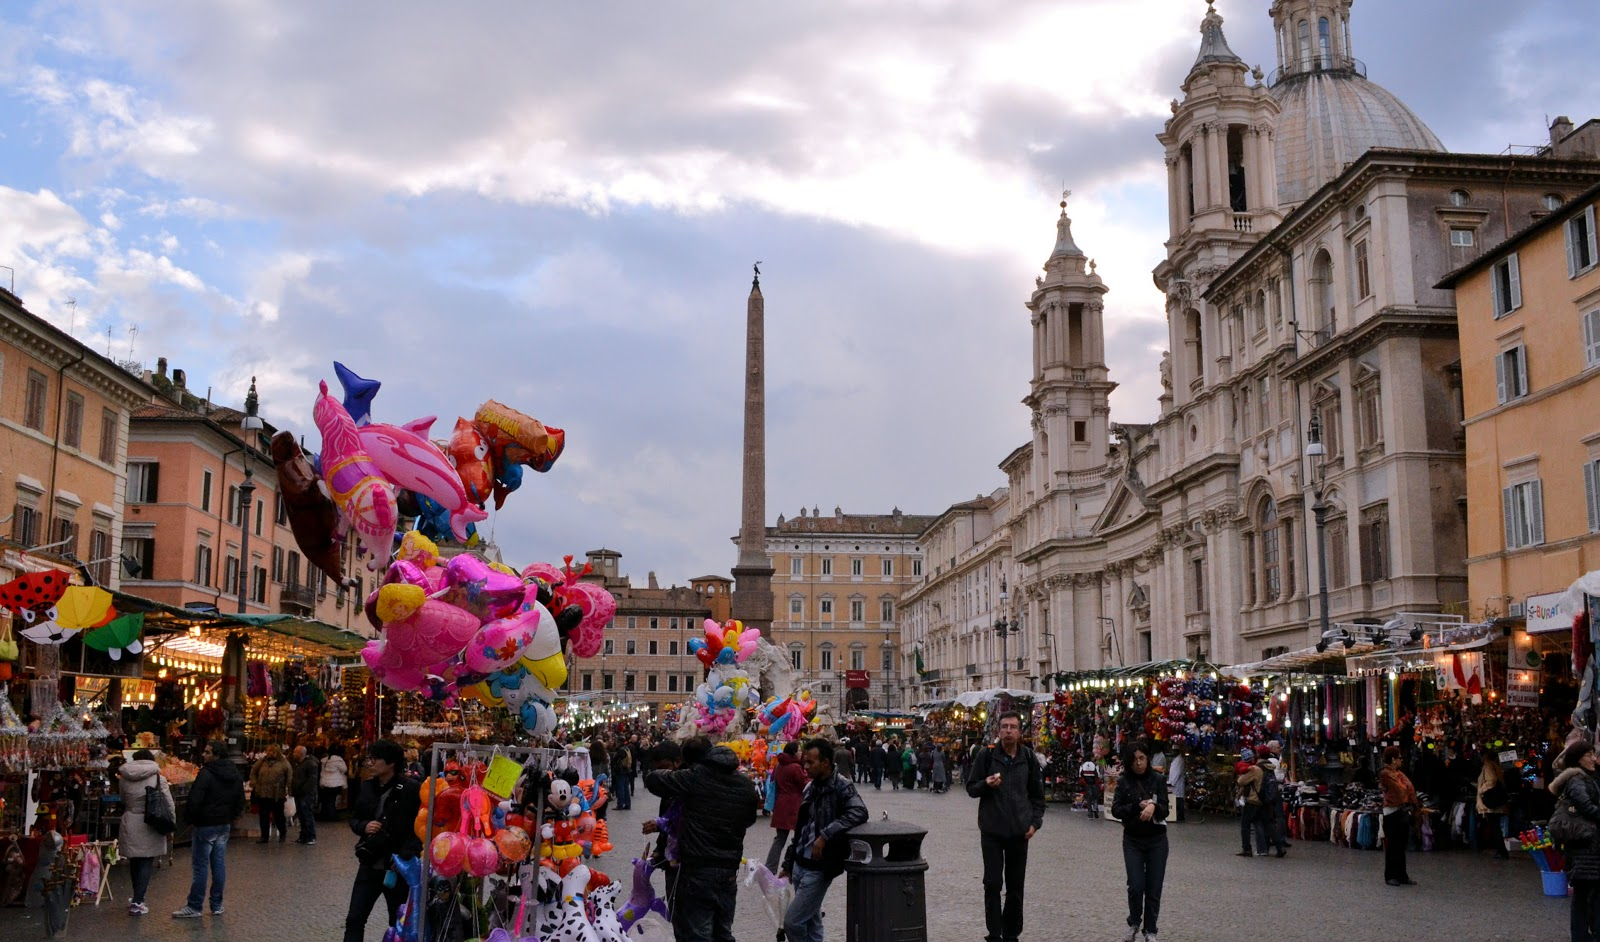 christmas market in the piazza navona in rome italy remains open till the epiphany - How Does Italy Celebrate Christmas